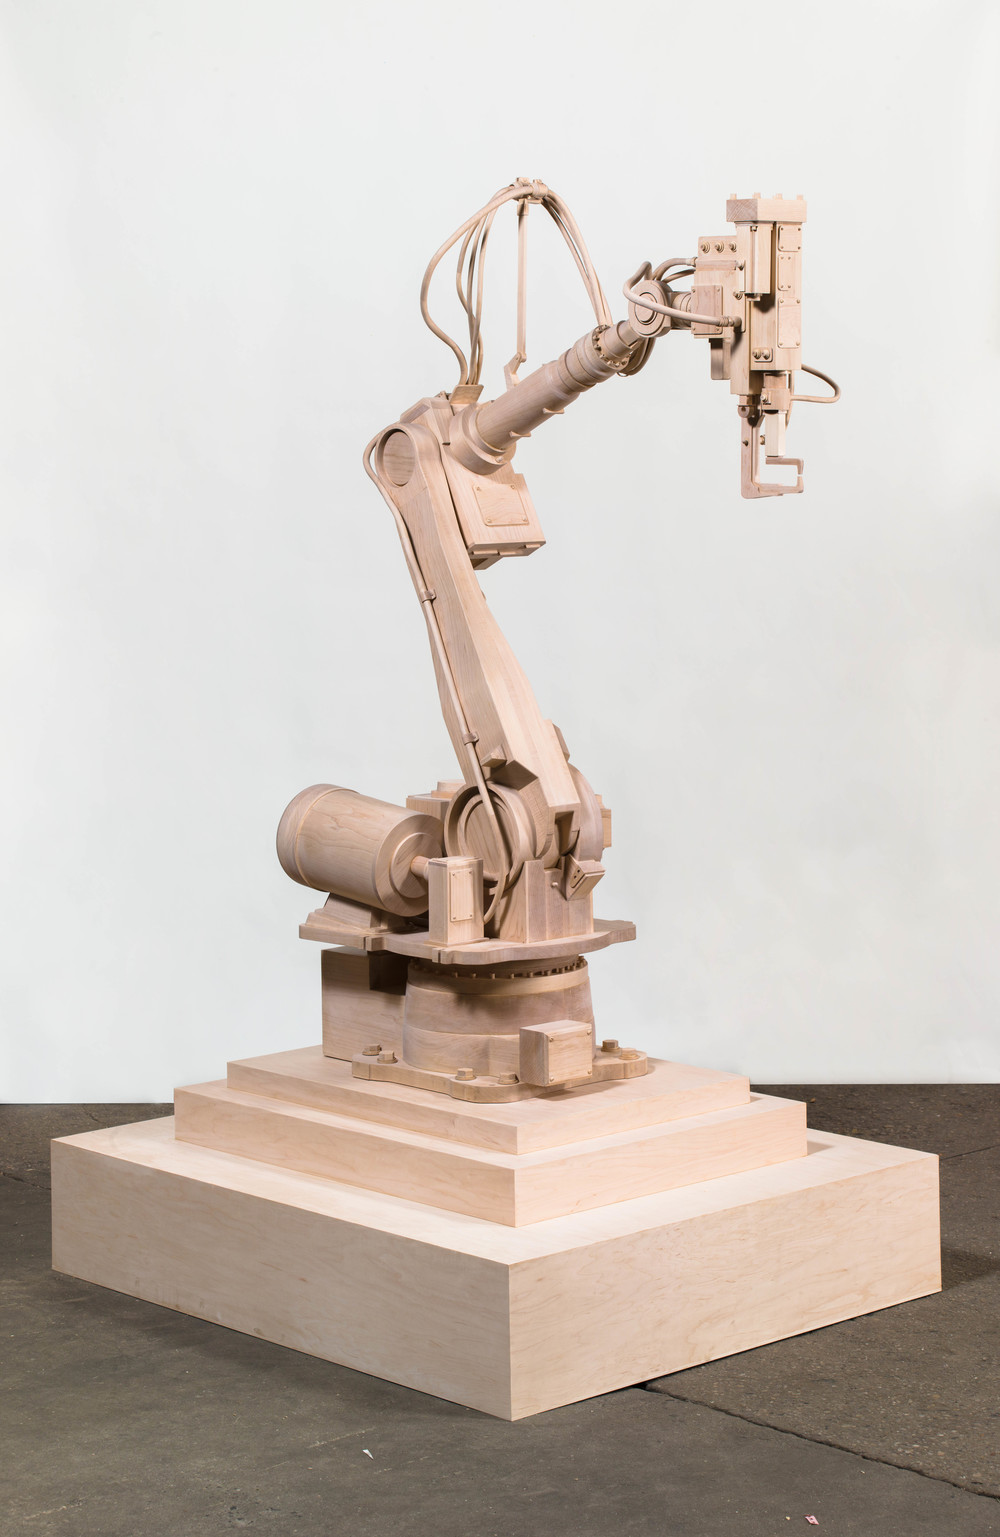 Robot, 2013, Maple wood, 70 x 40 x 24 inches